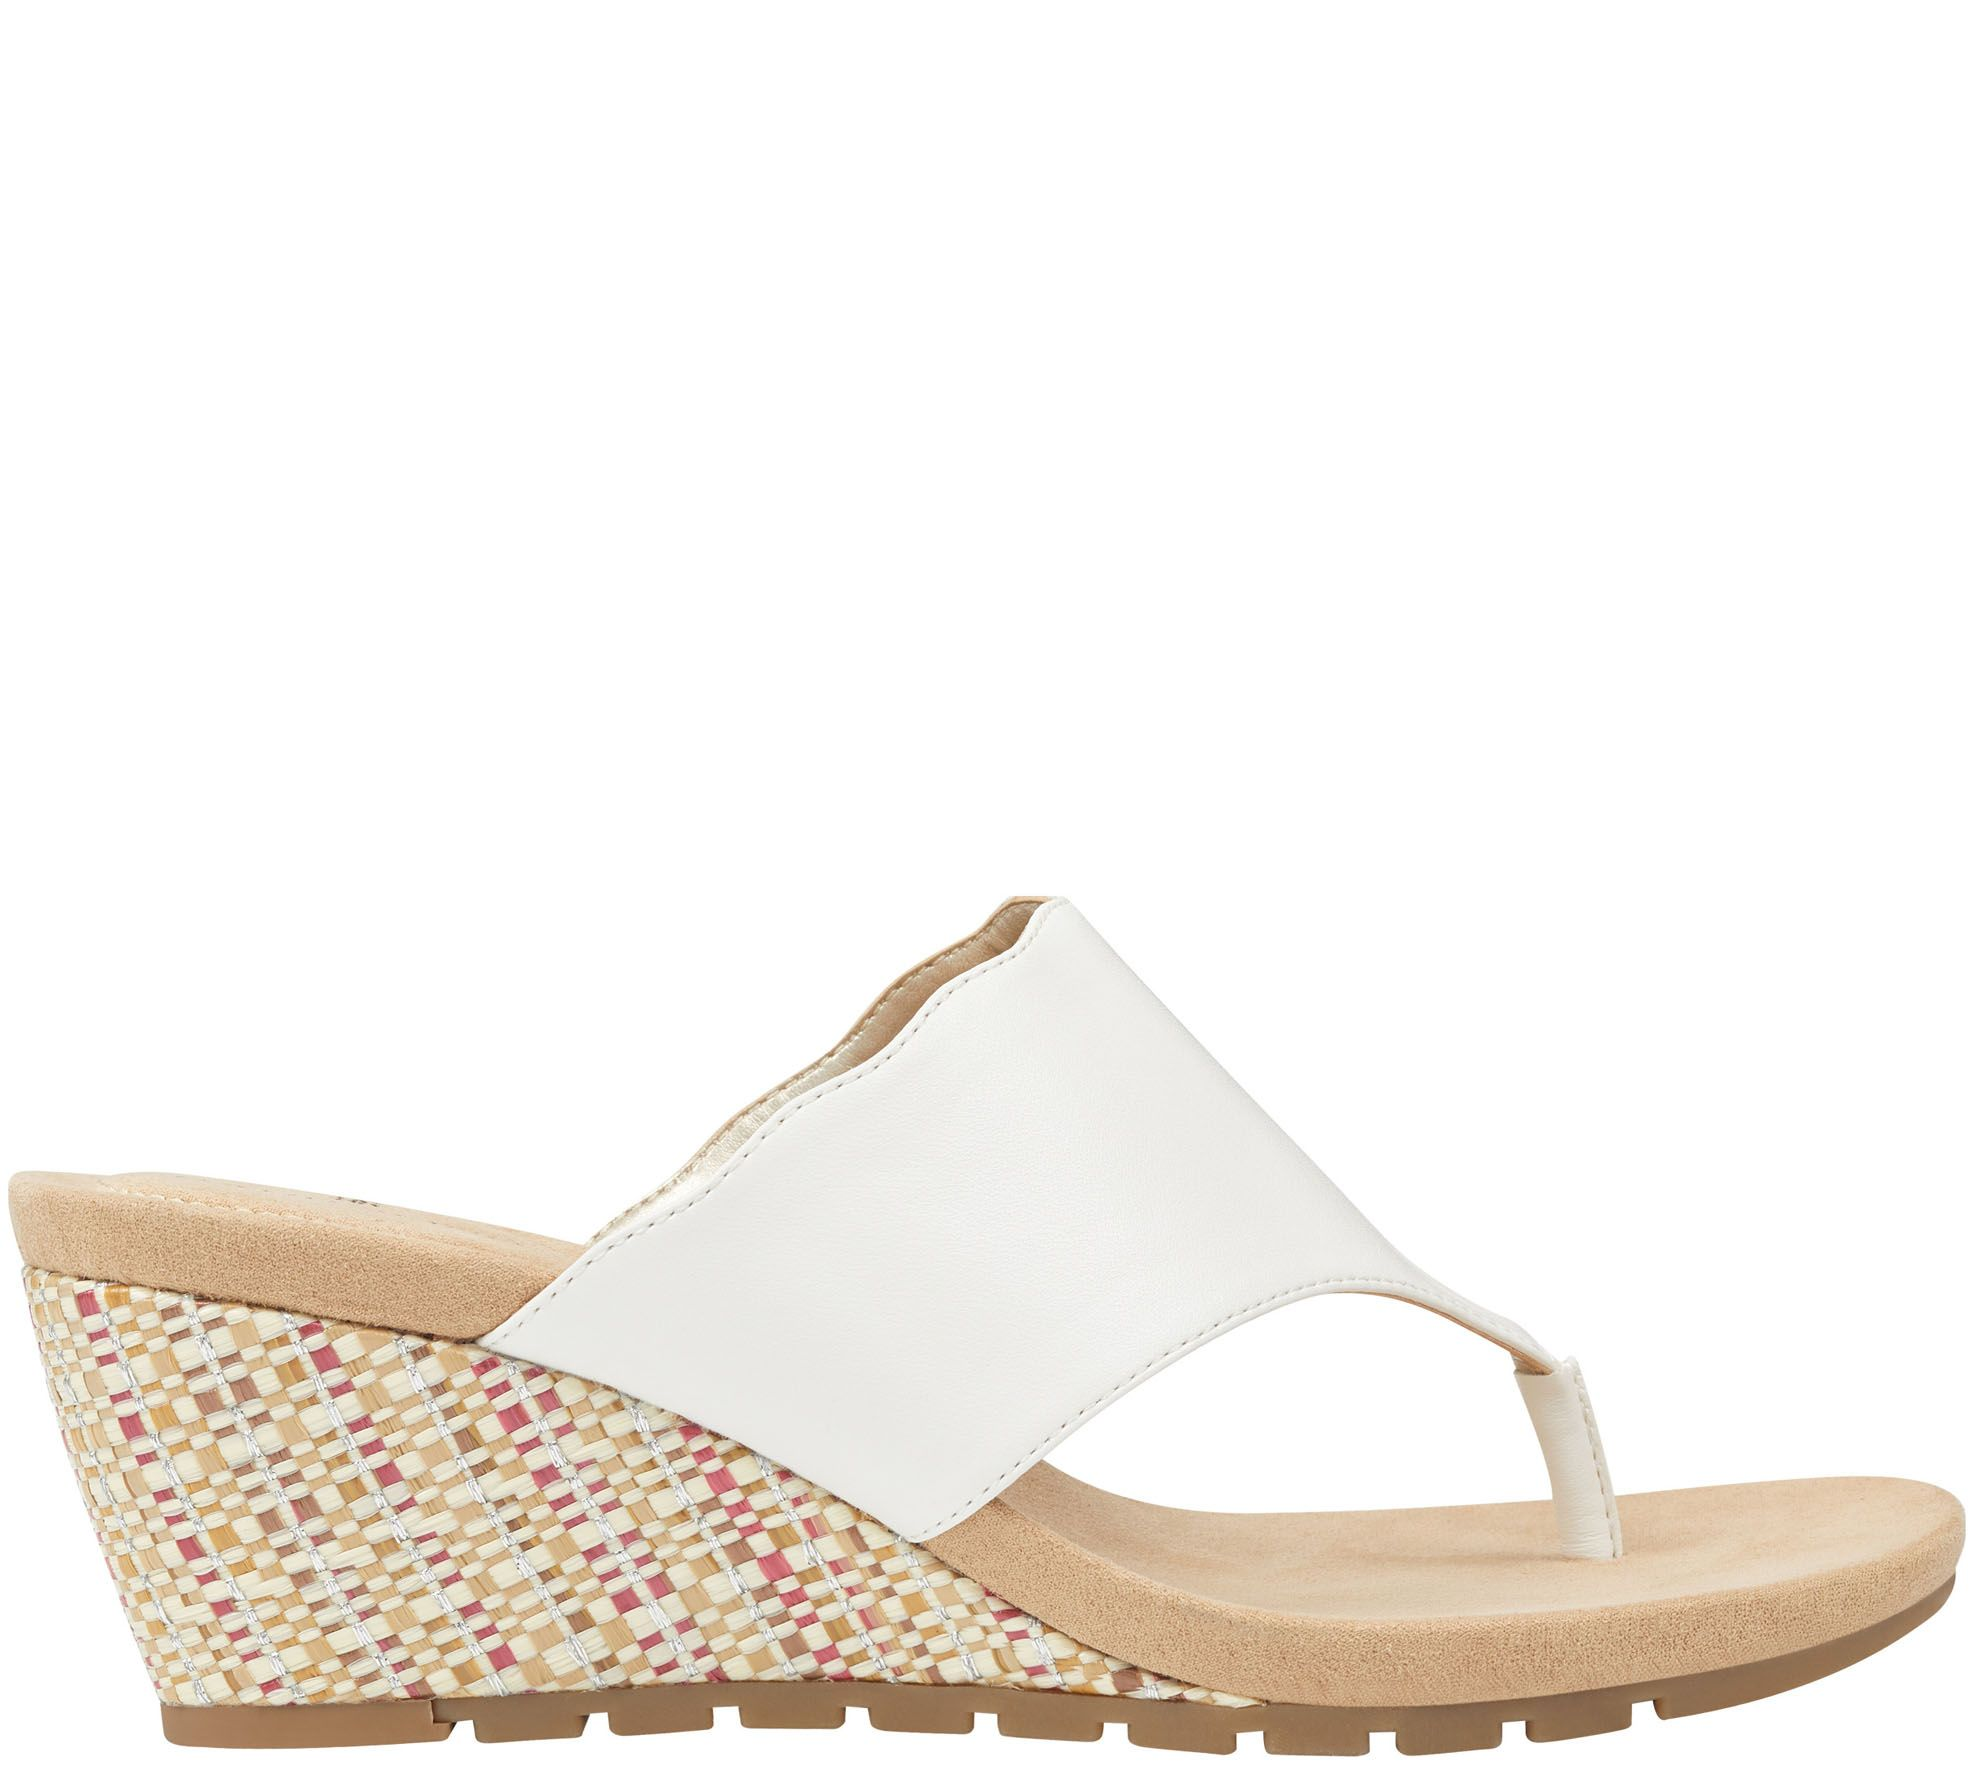 41742bf190e6 Bandolino Casual Wedge Sandals - Sarita — QVC.com